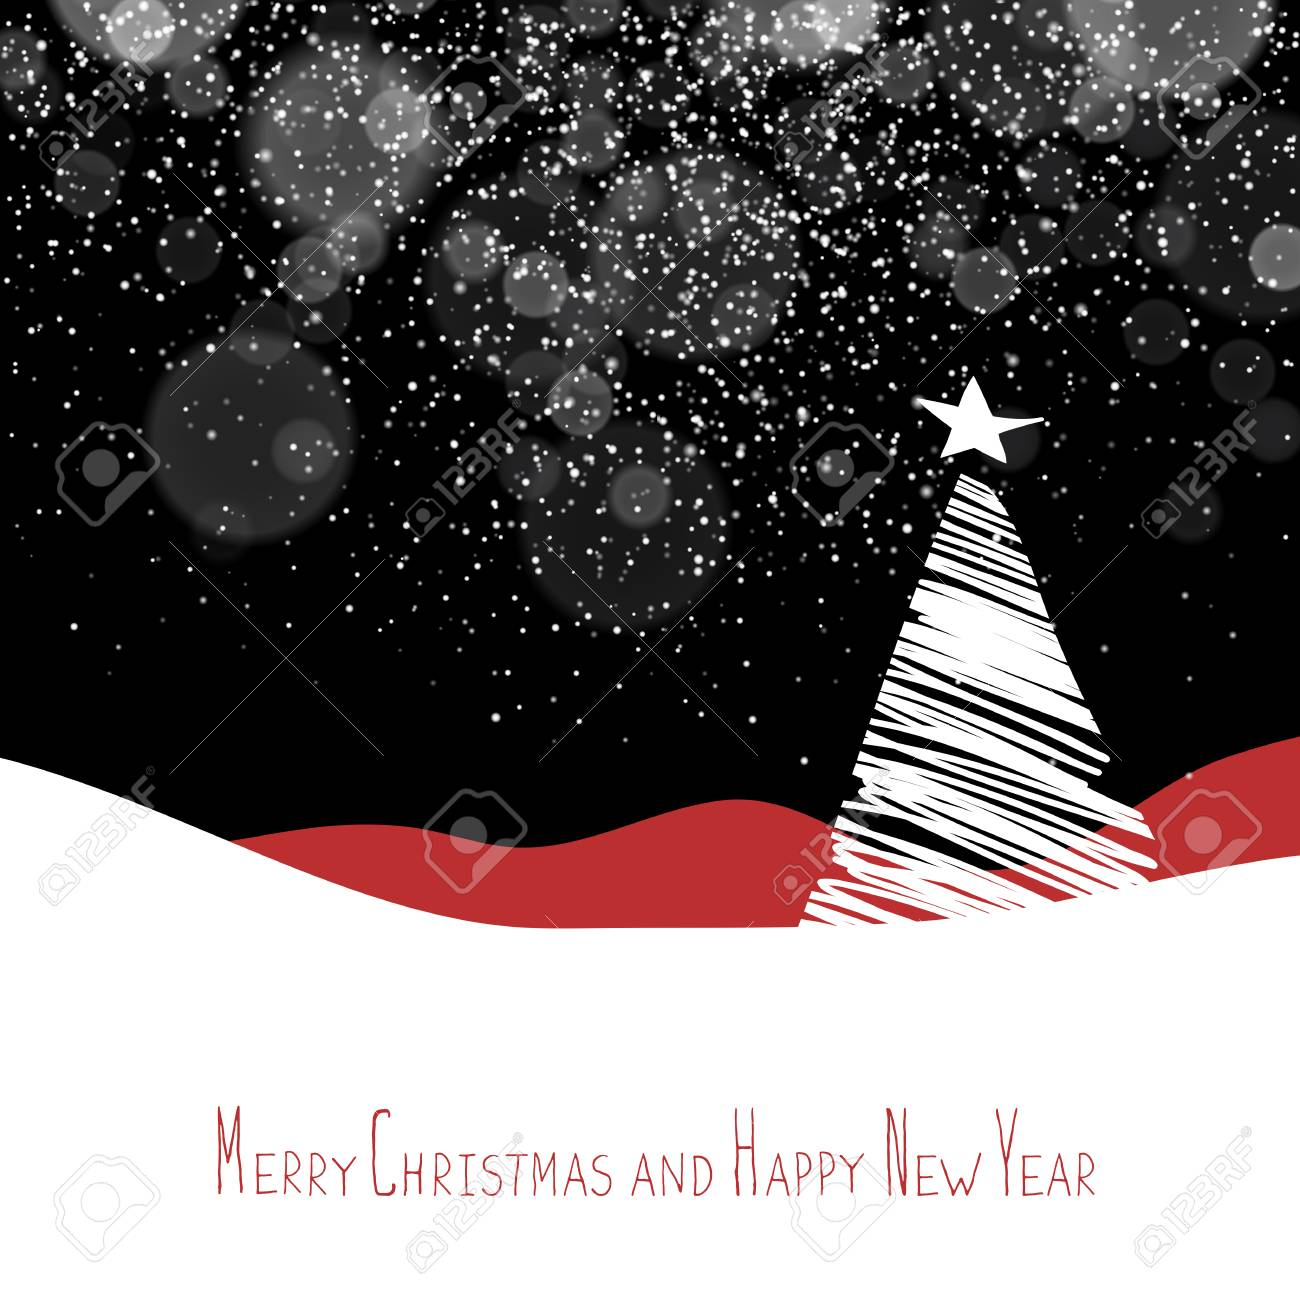 merry christmas and happy new year postcard christmas tree xmas postcard template vector